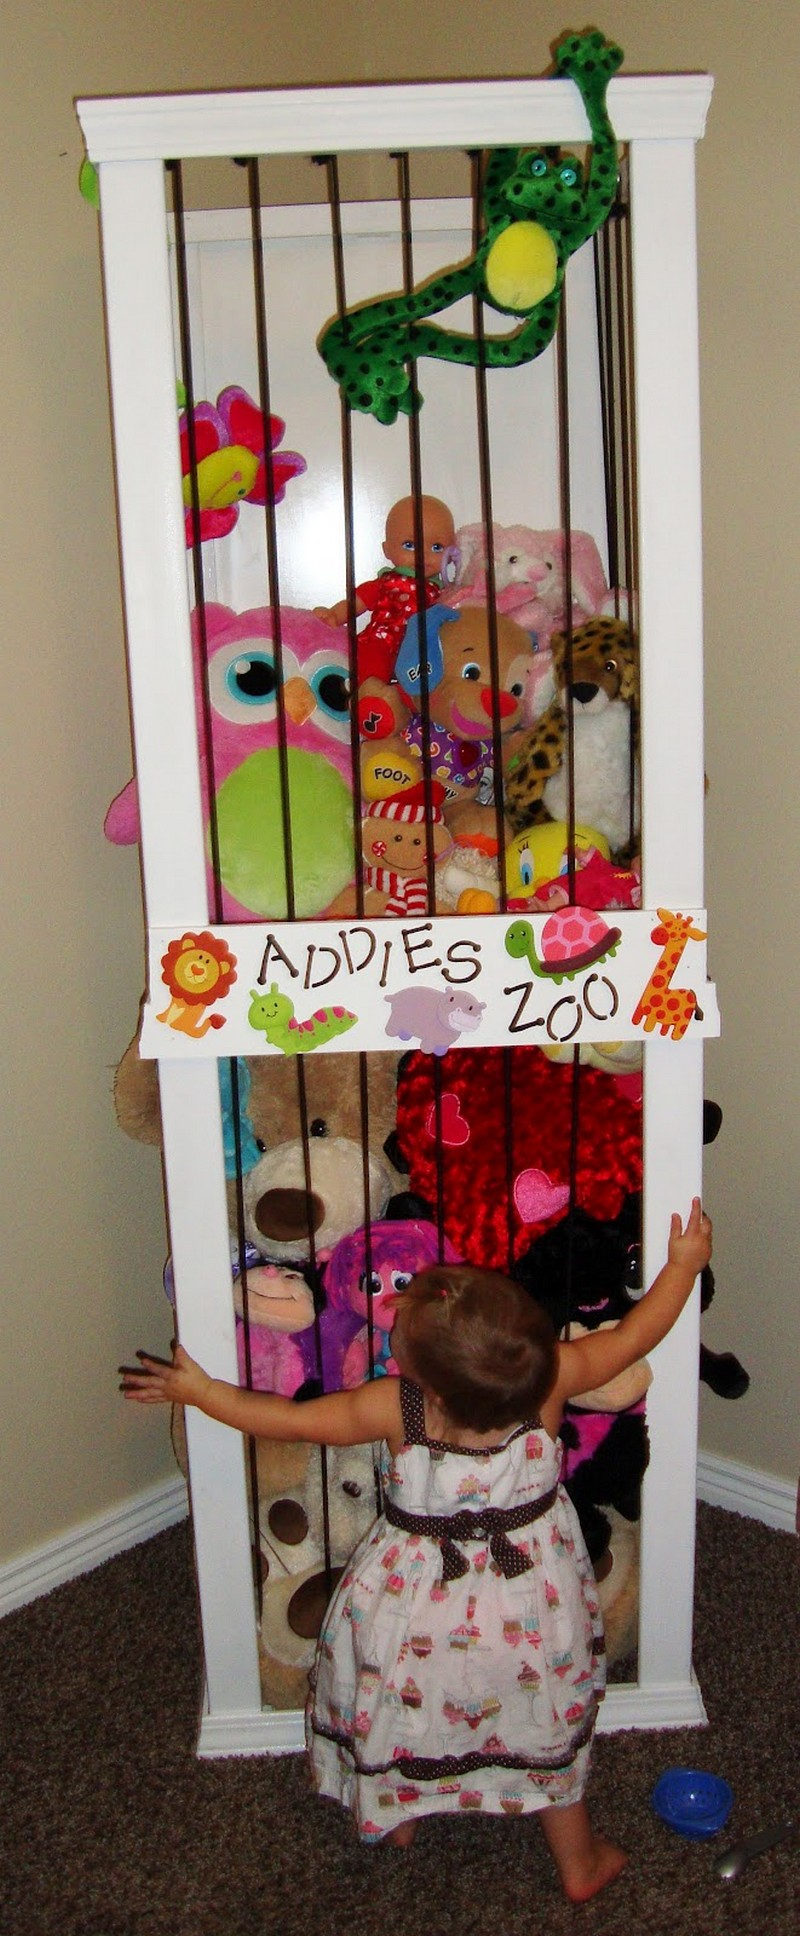 Diy Toy Holder : Diy stuffed animal zoo the owner builder network